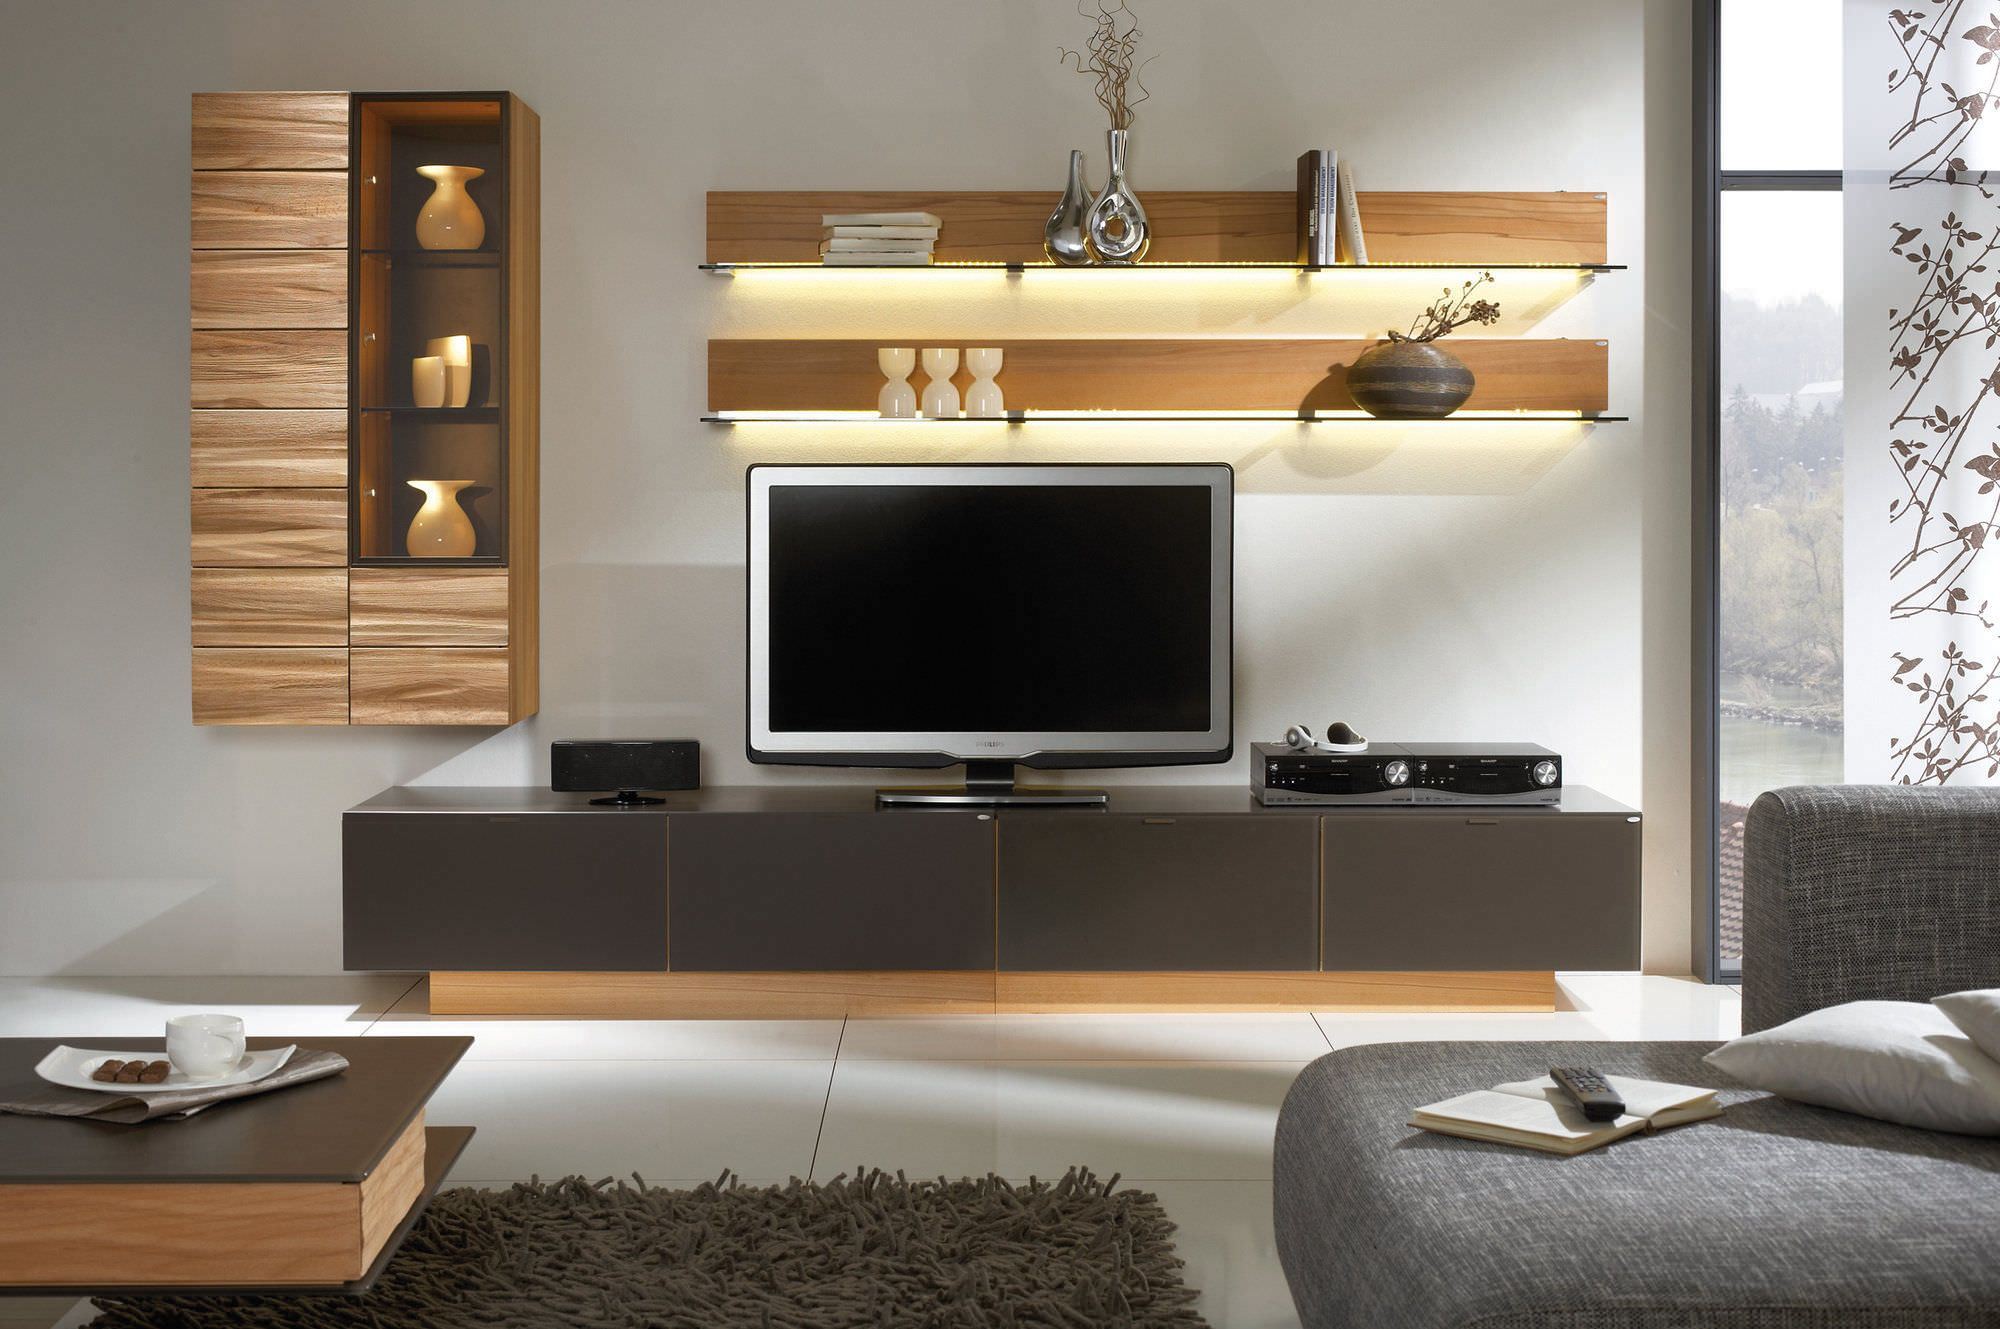 Tv Wall Shelf Wood In Different Styles Home Design And Decor Living Room Pinterest